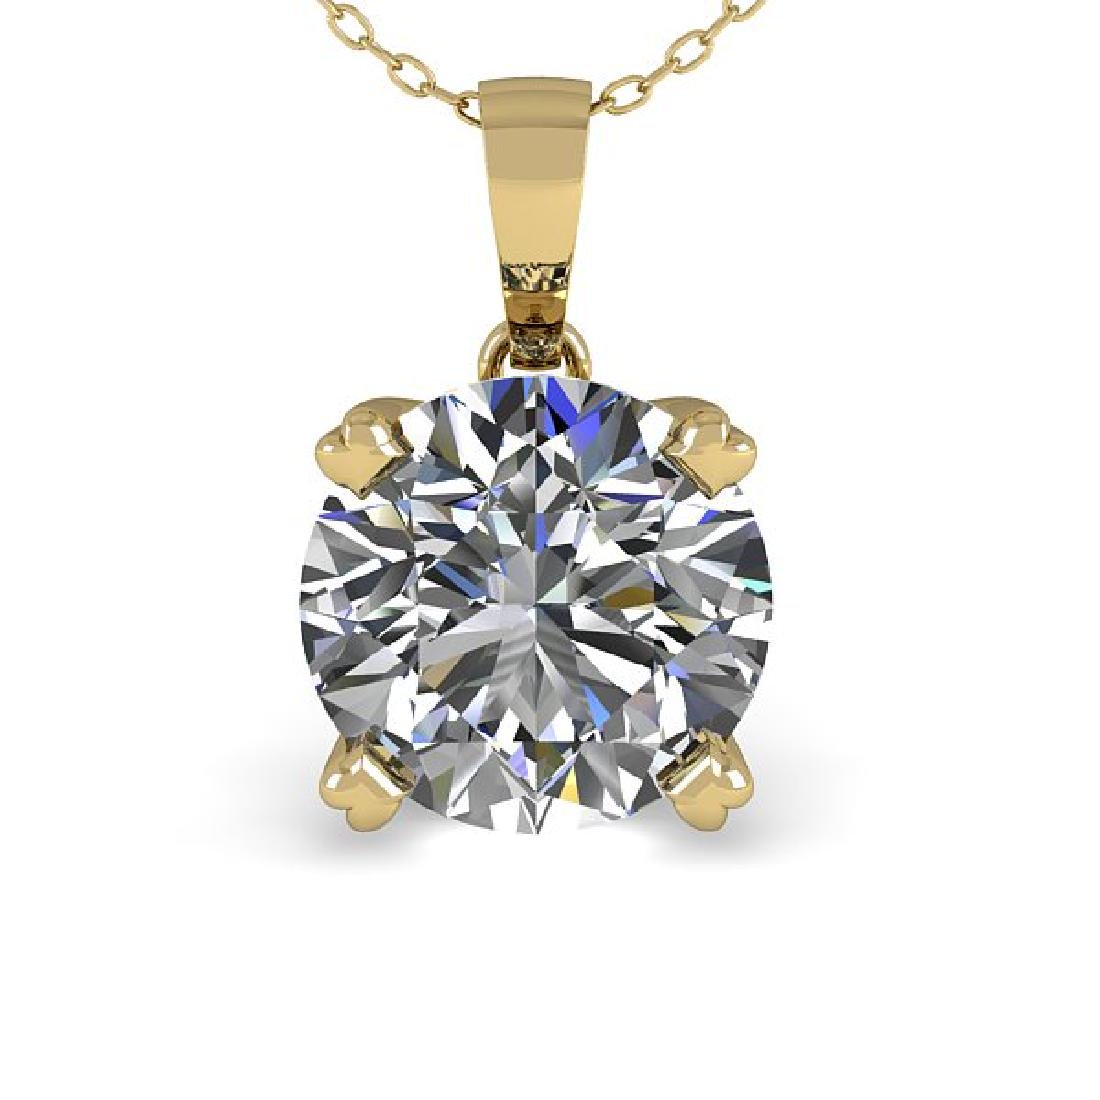 2 CTW Certified VS/SI Diamond Necklace 14K Yellow Gold - 2